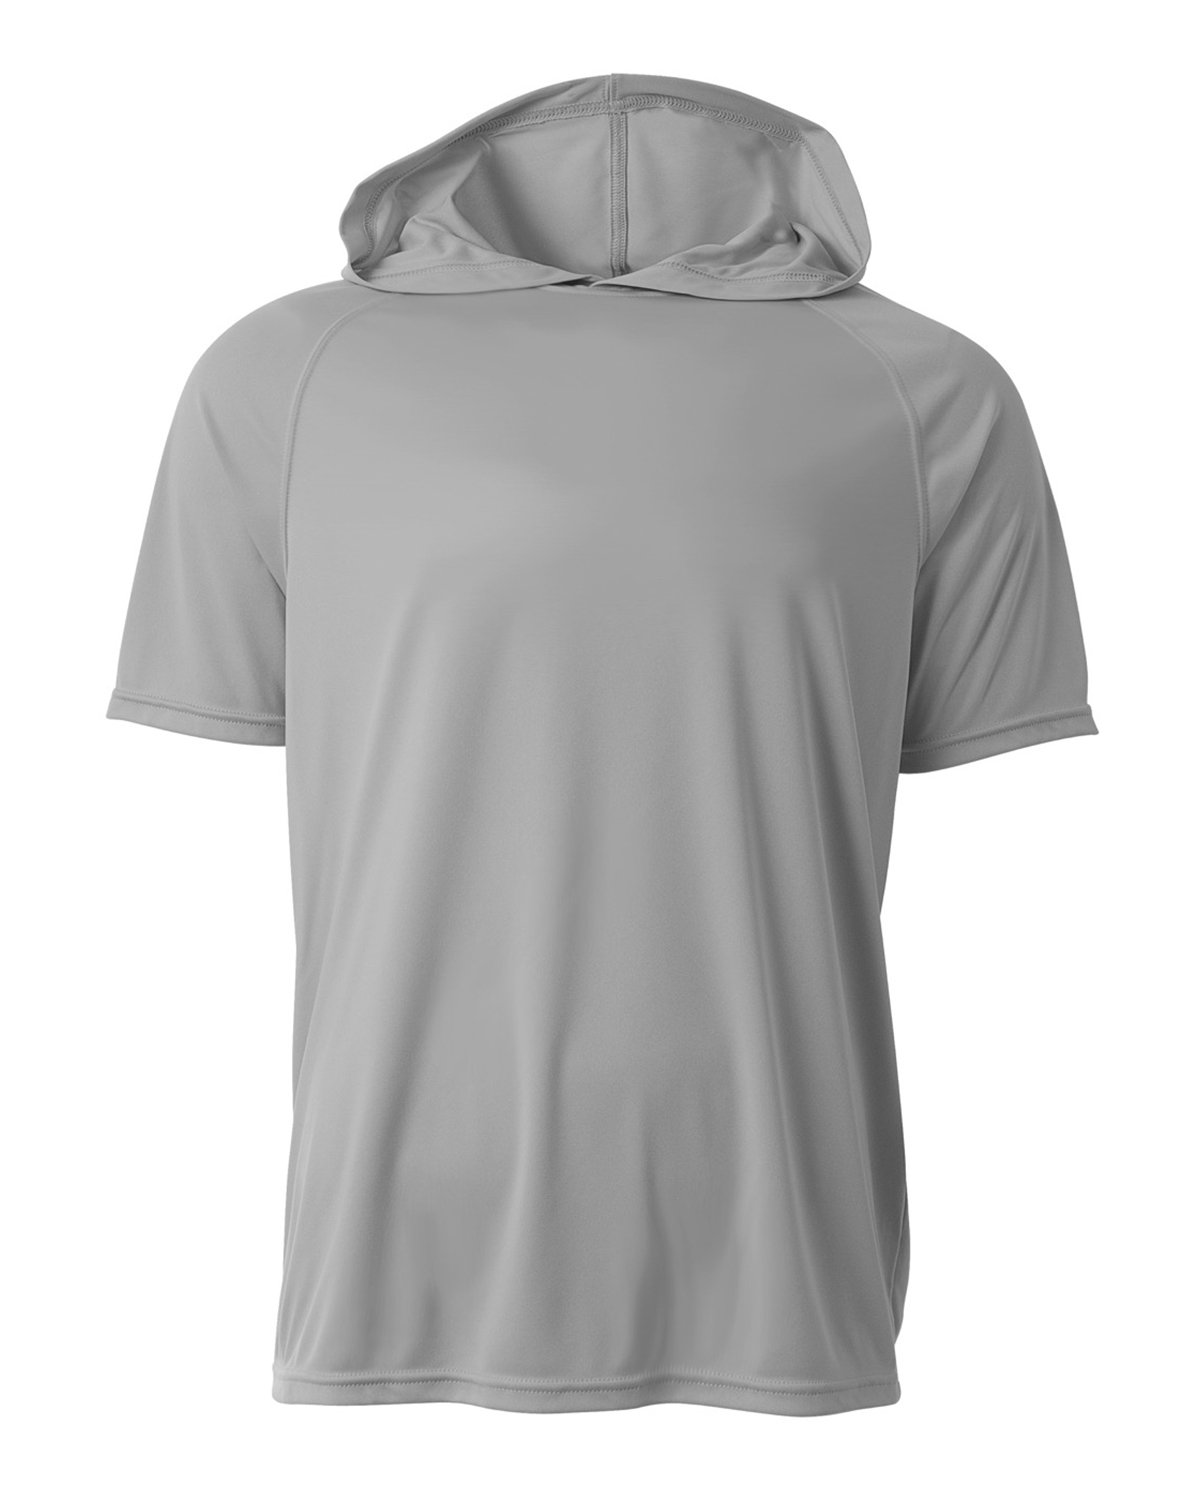 A4 Men's Cooling Performance Hooded T-shirt SILVER